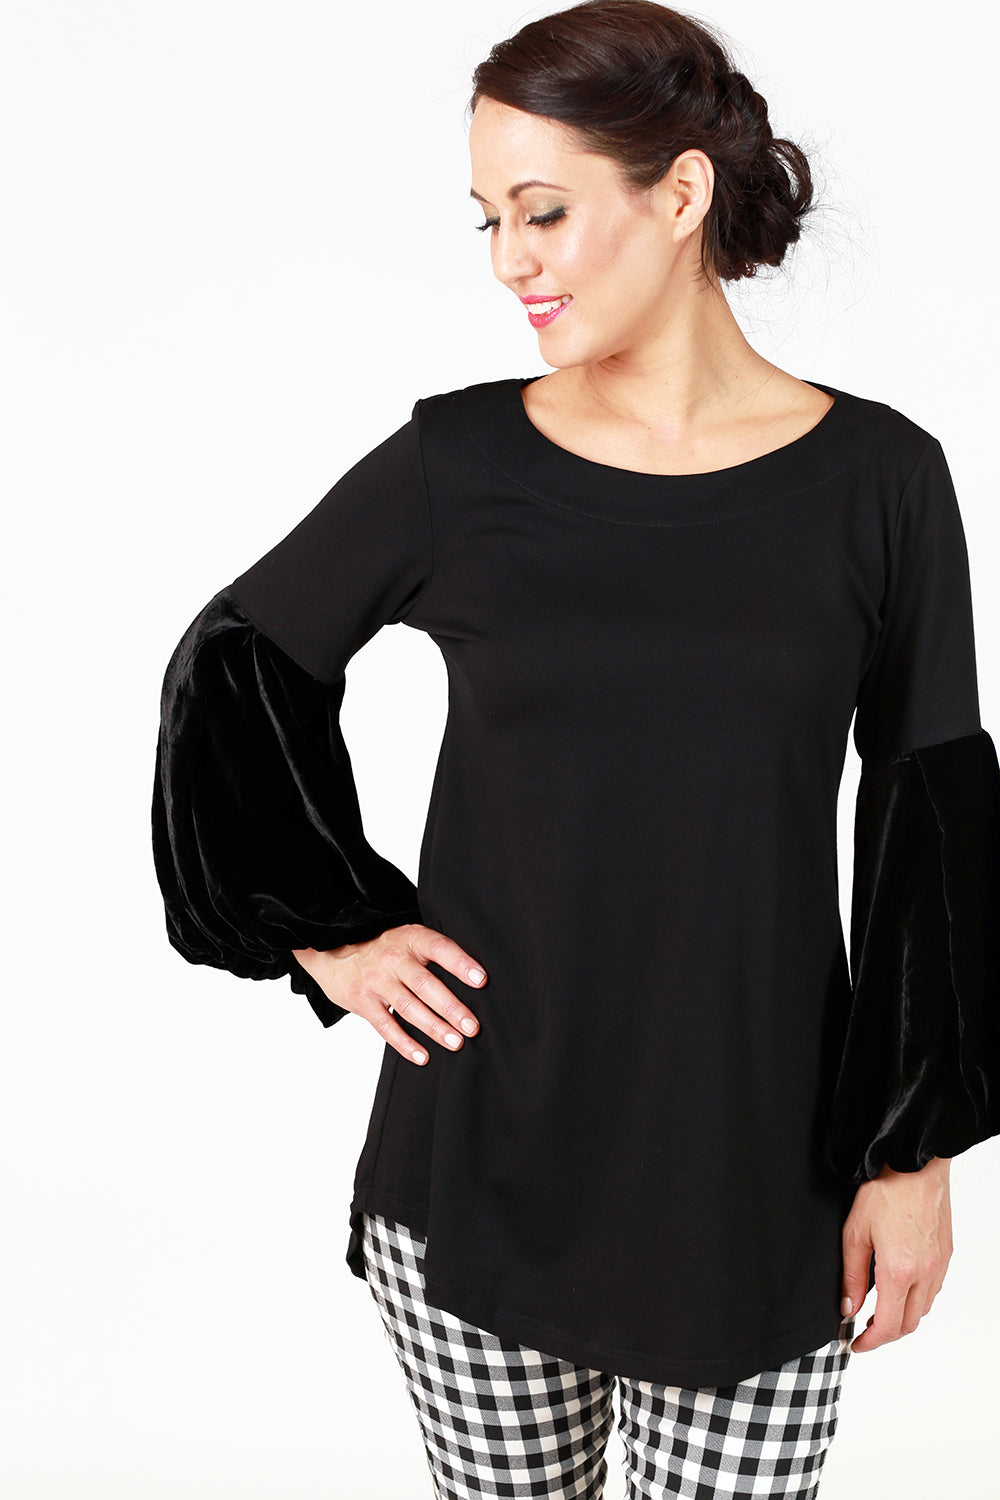 Kitty Jazz Top - Black